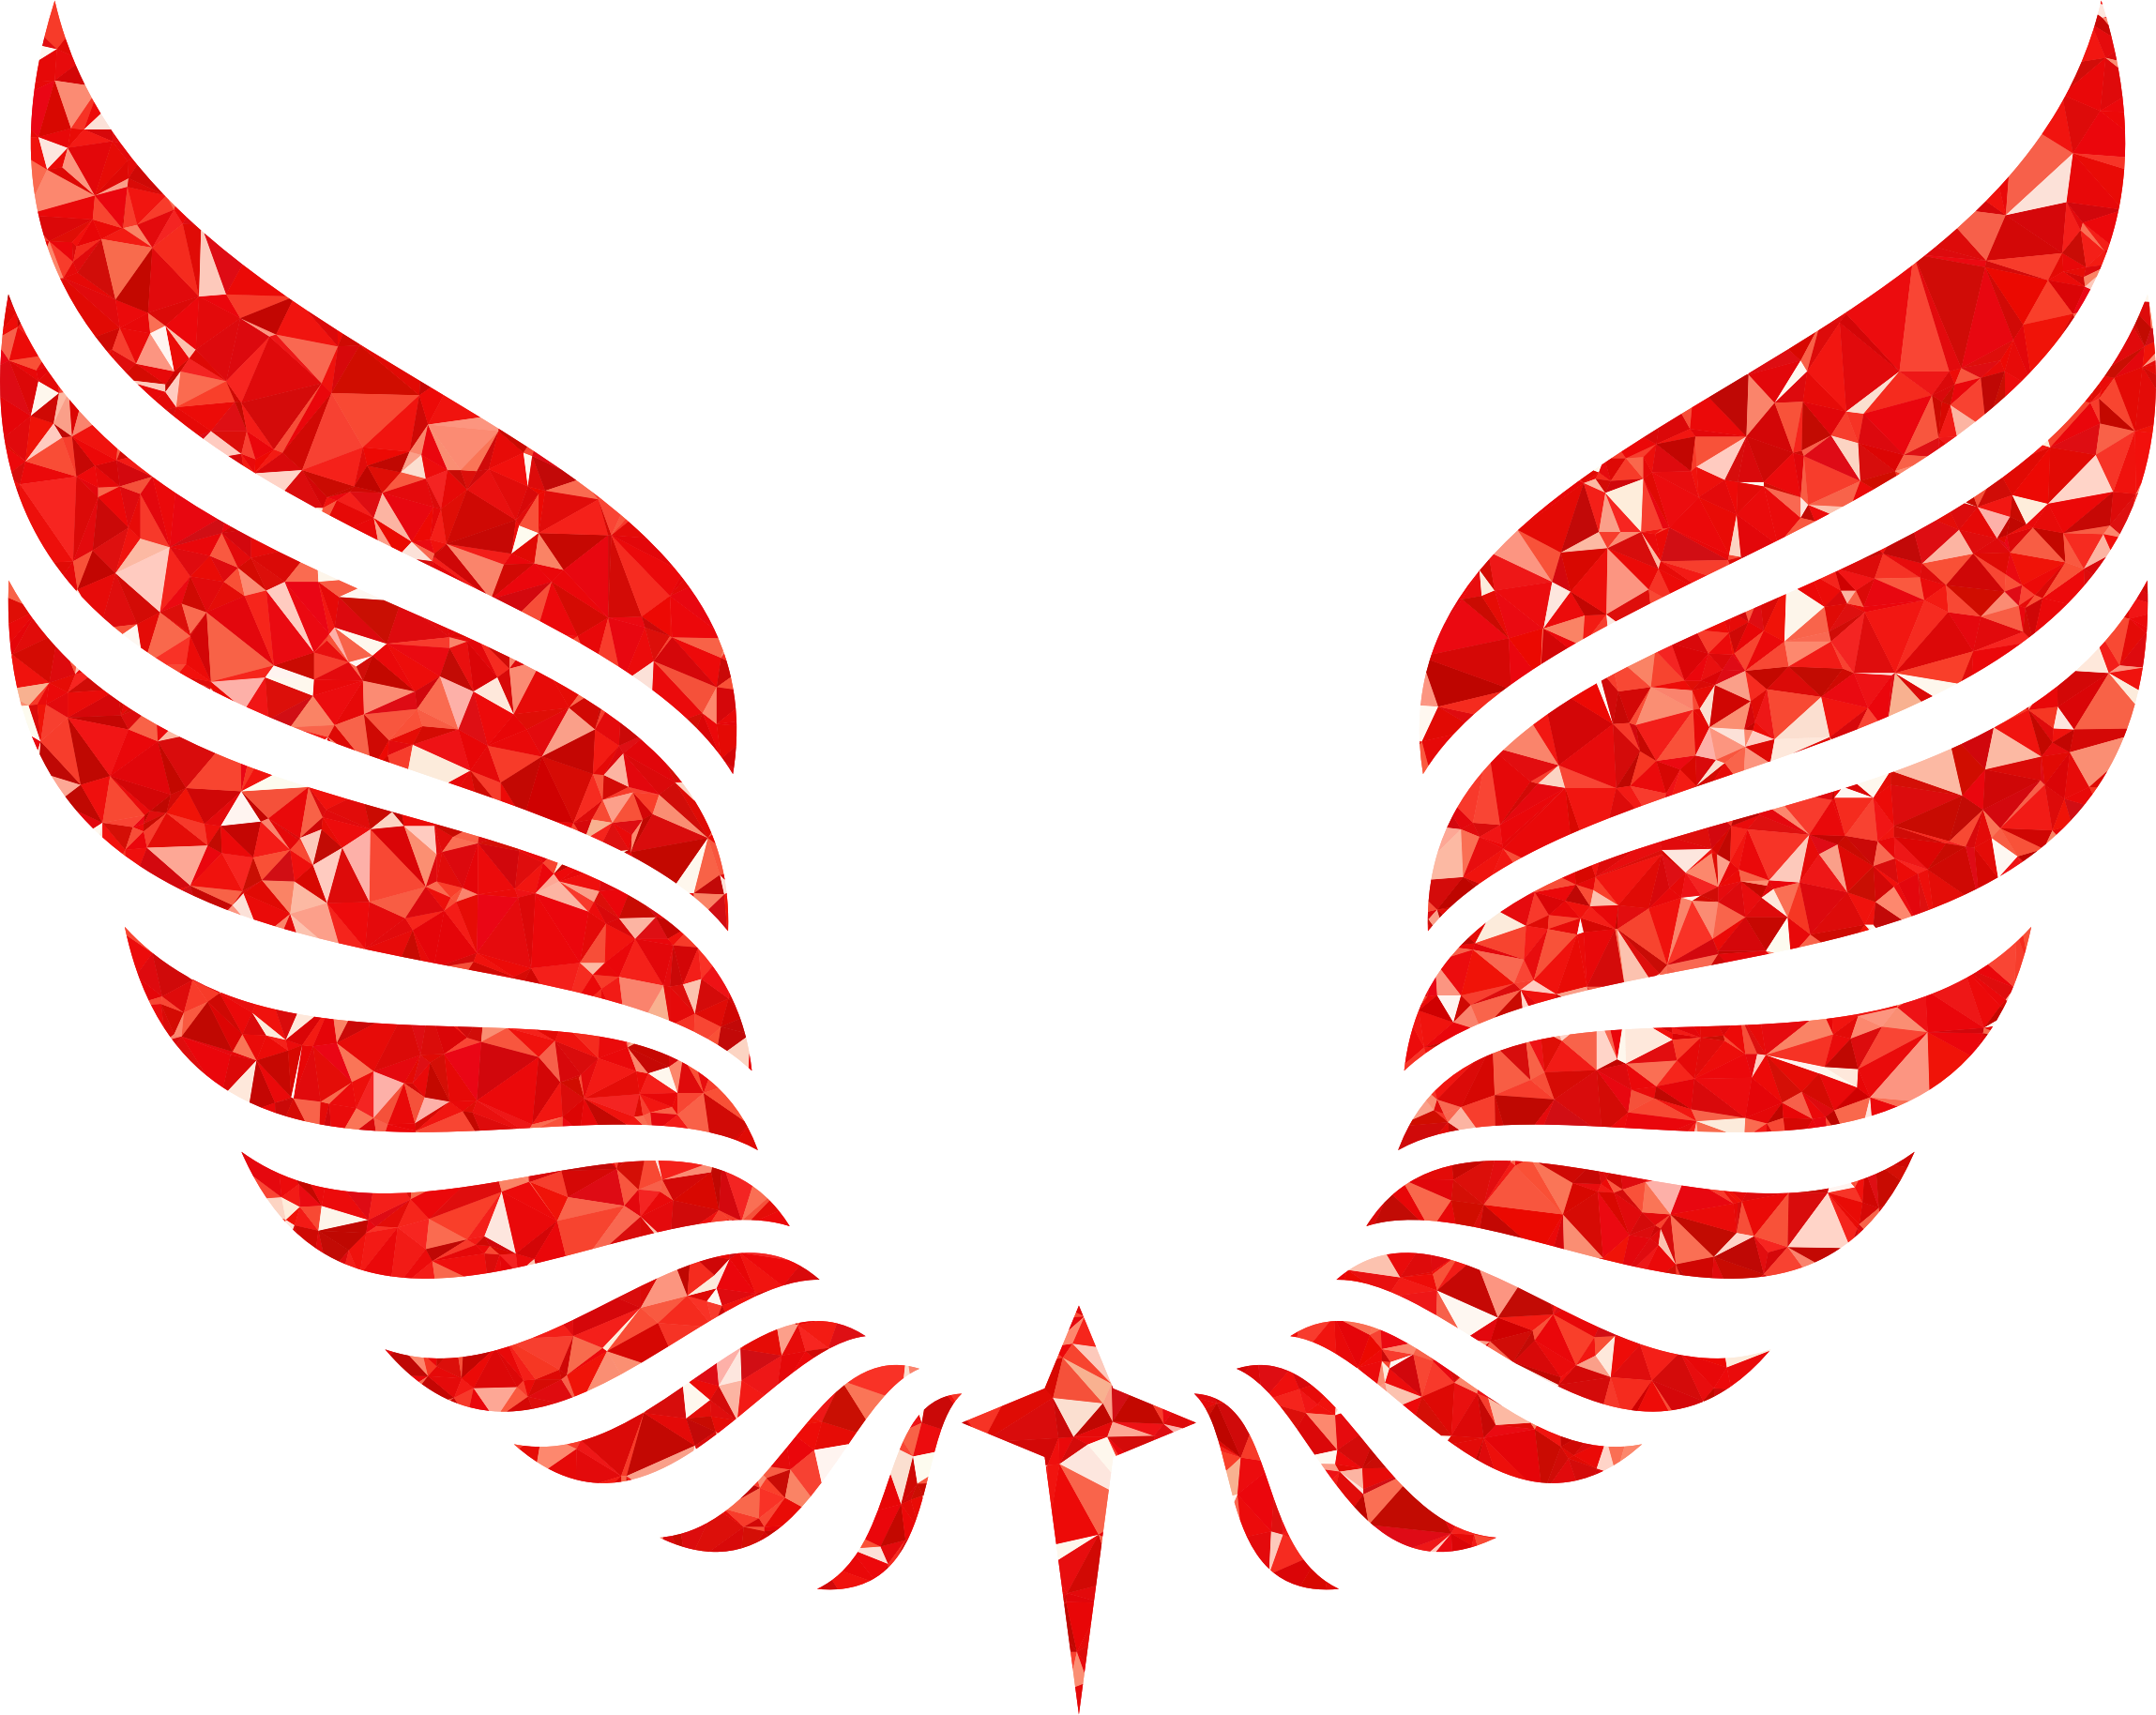 Wing svg abstract. Ruby wings icons png